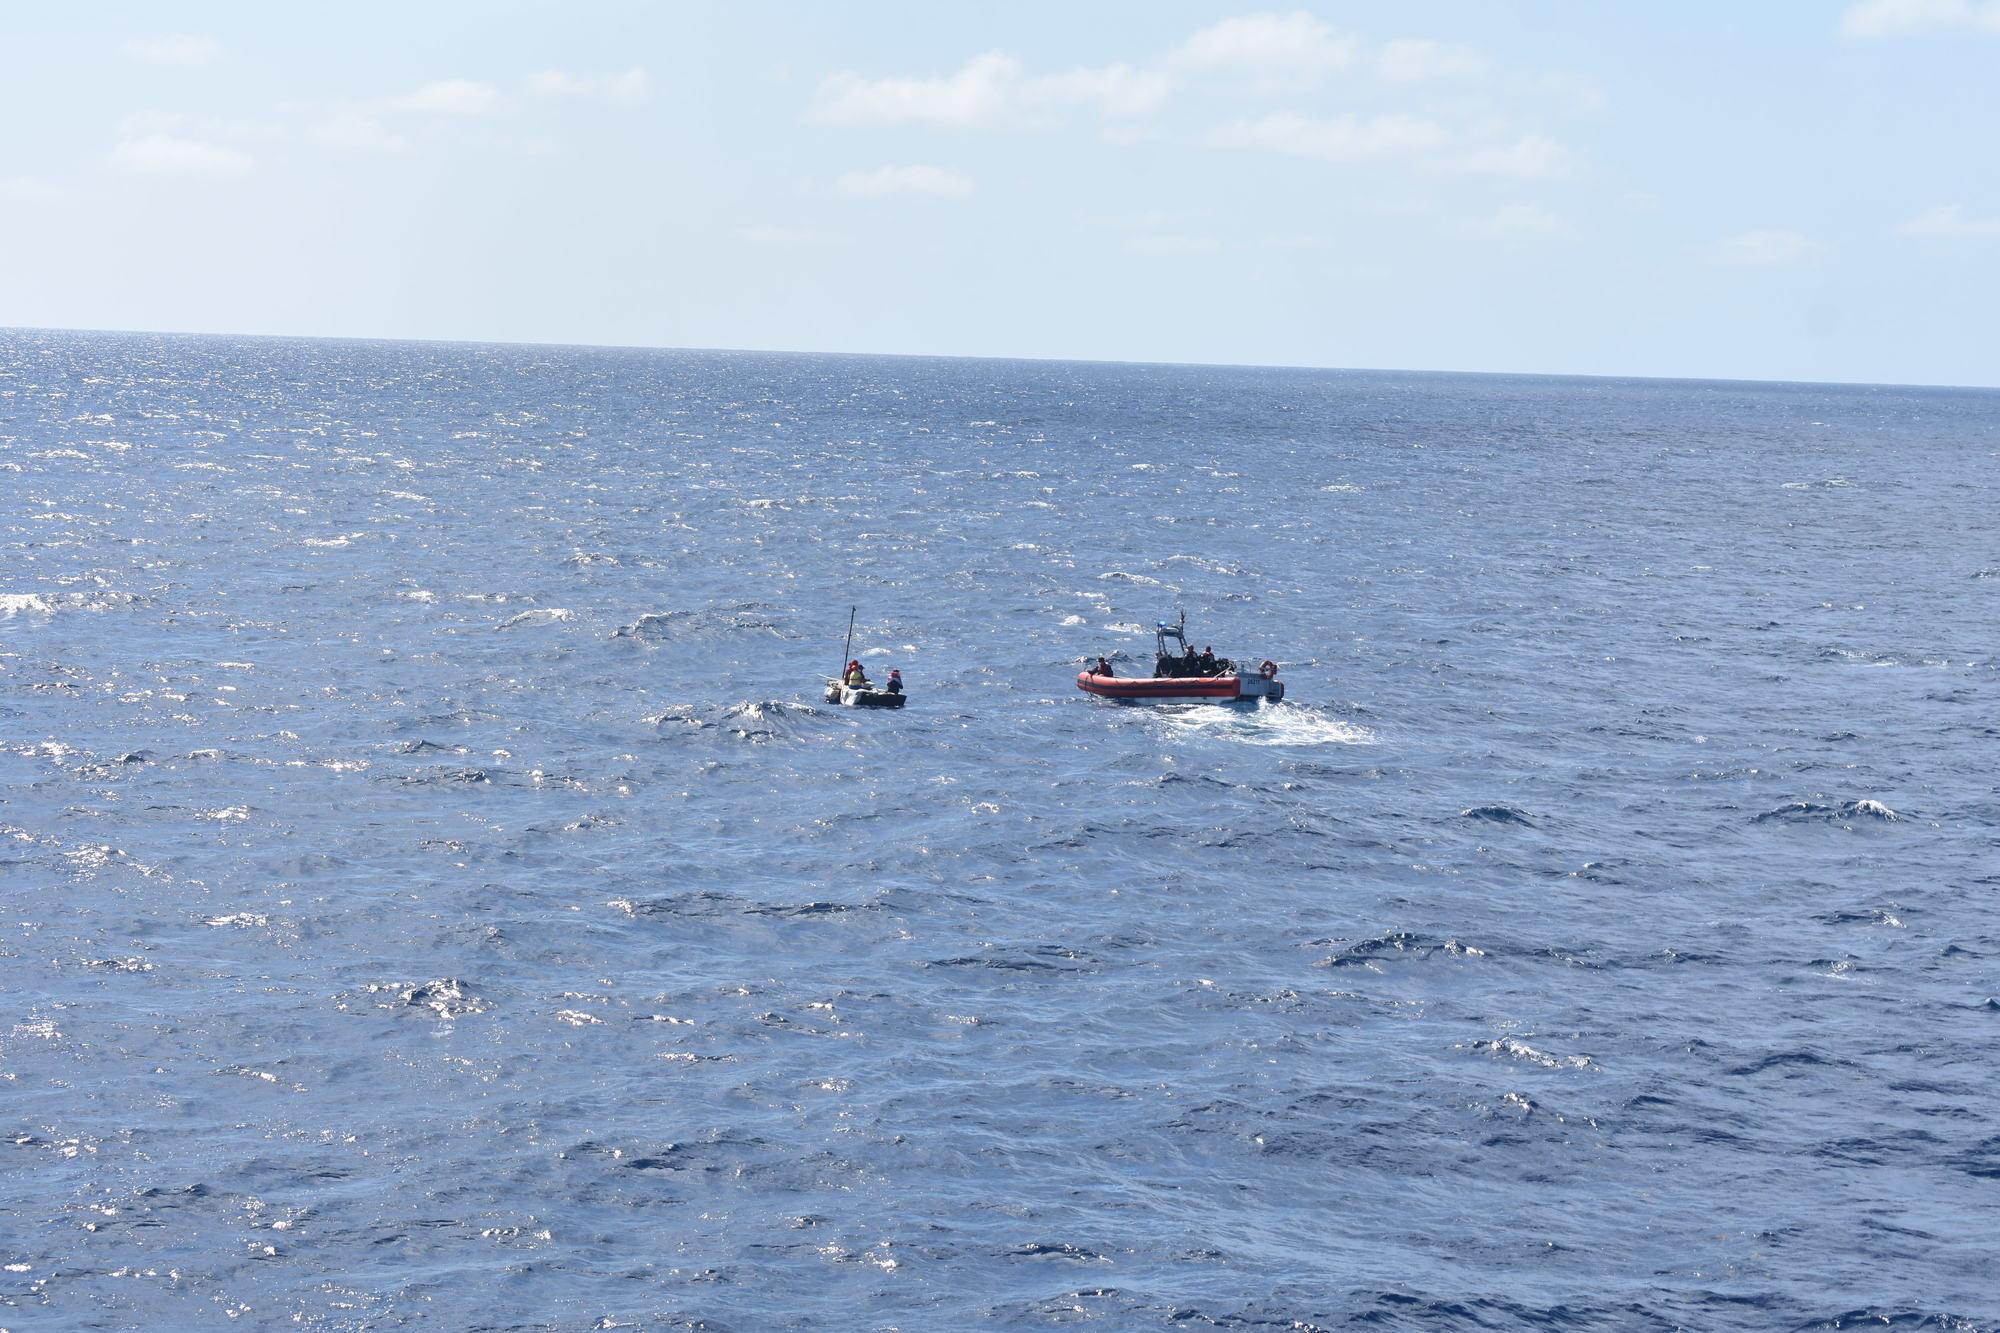 Coast Guard repatriates 3 migrants to Cuba